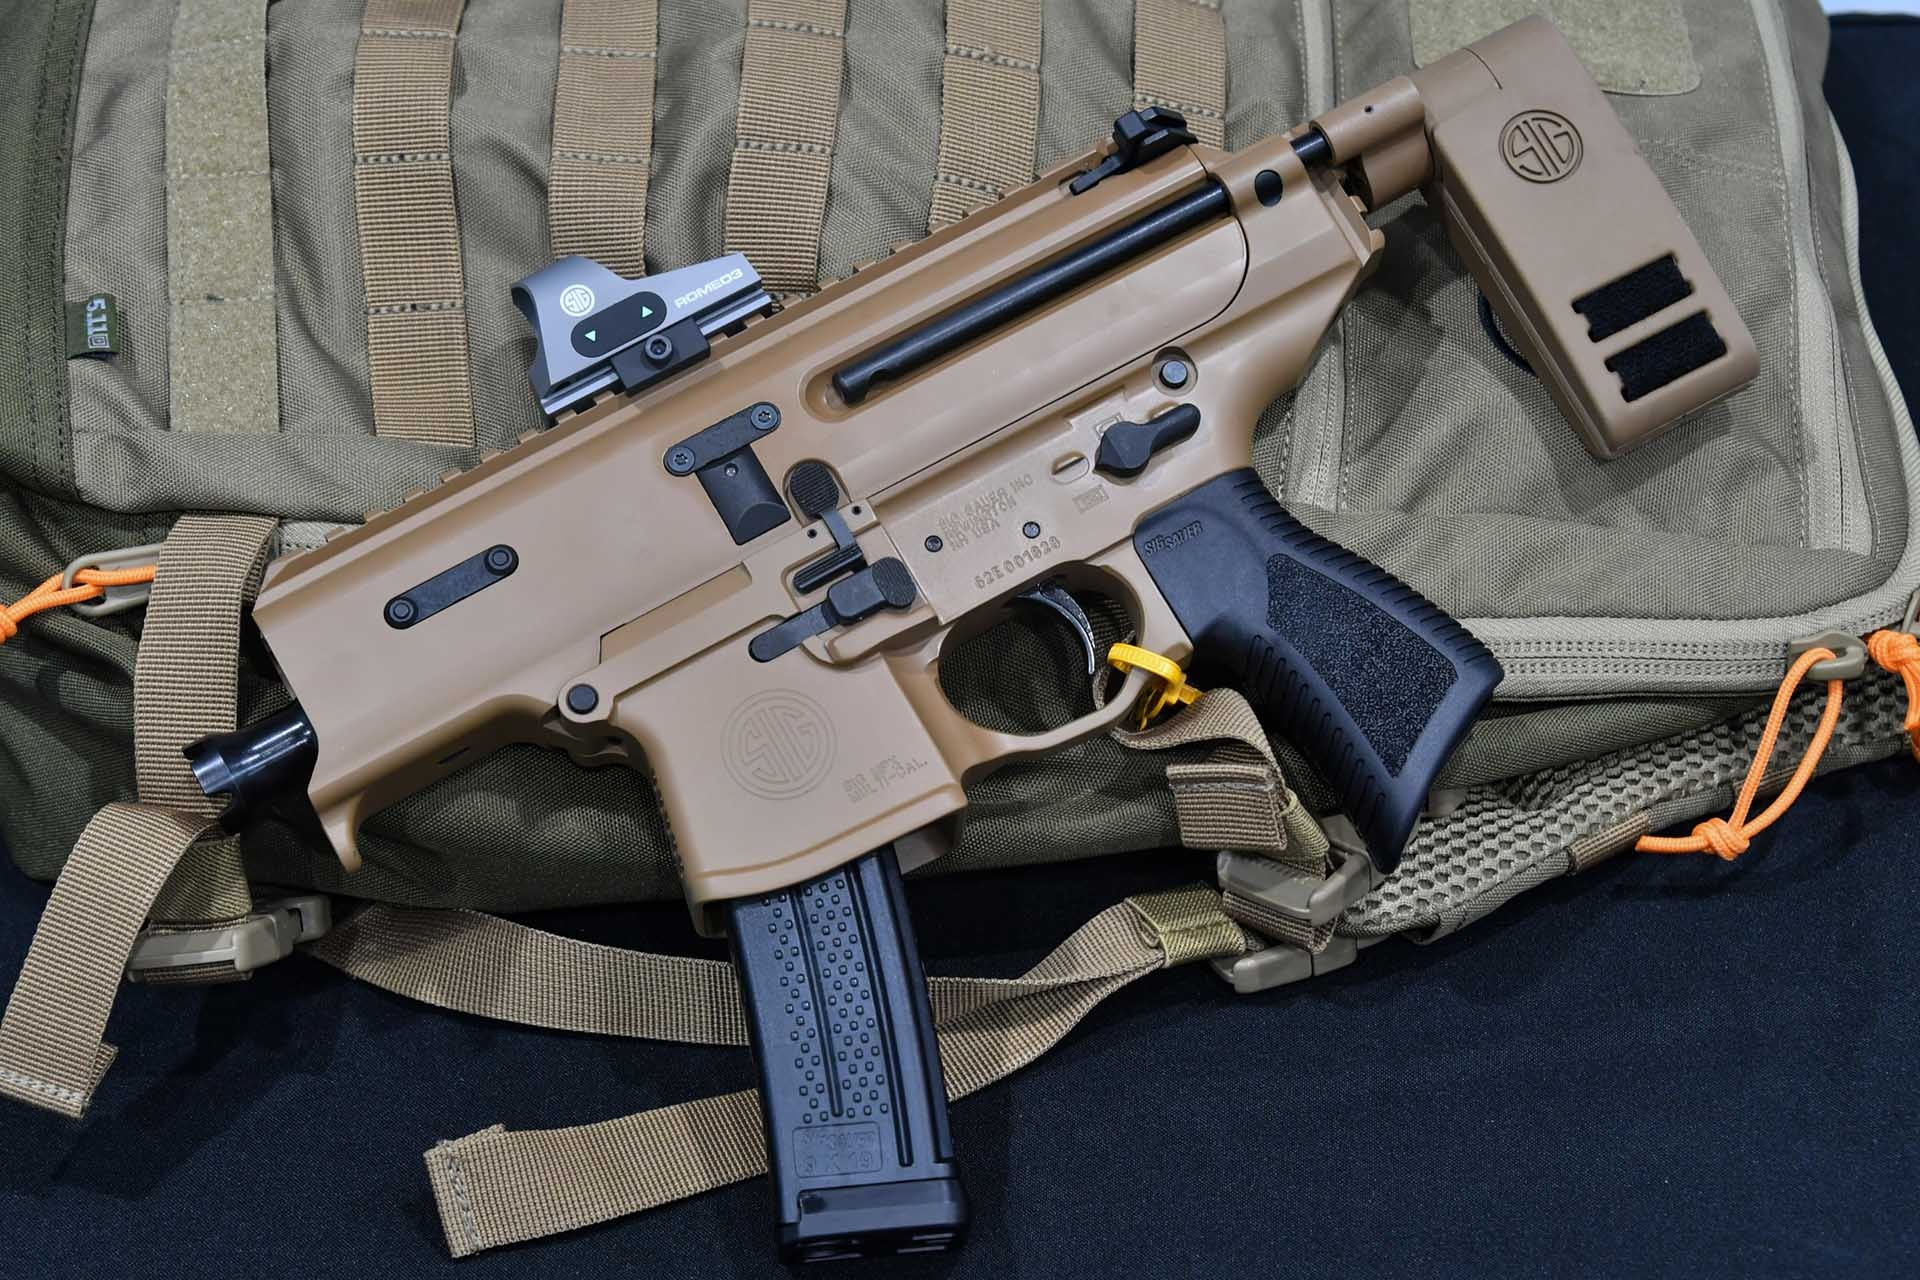 The right side of the SIG Sauer Copperhead. The controls are the usual ones of the MPX model.